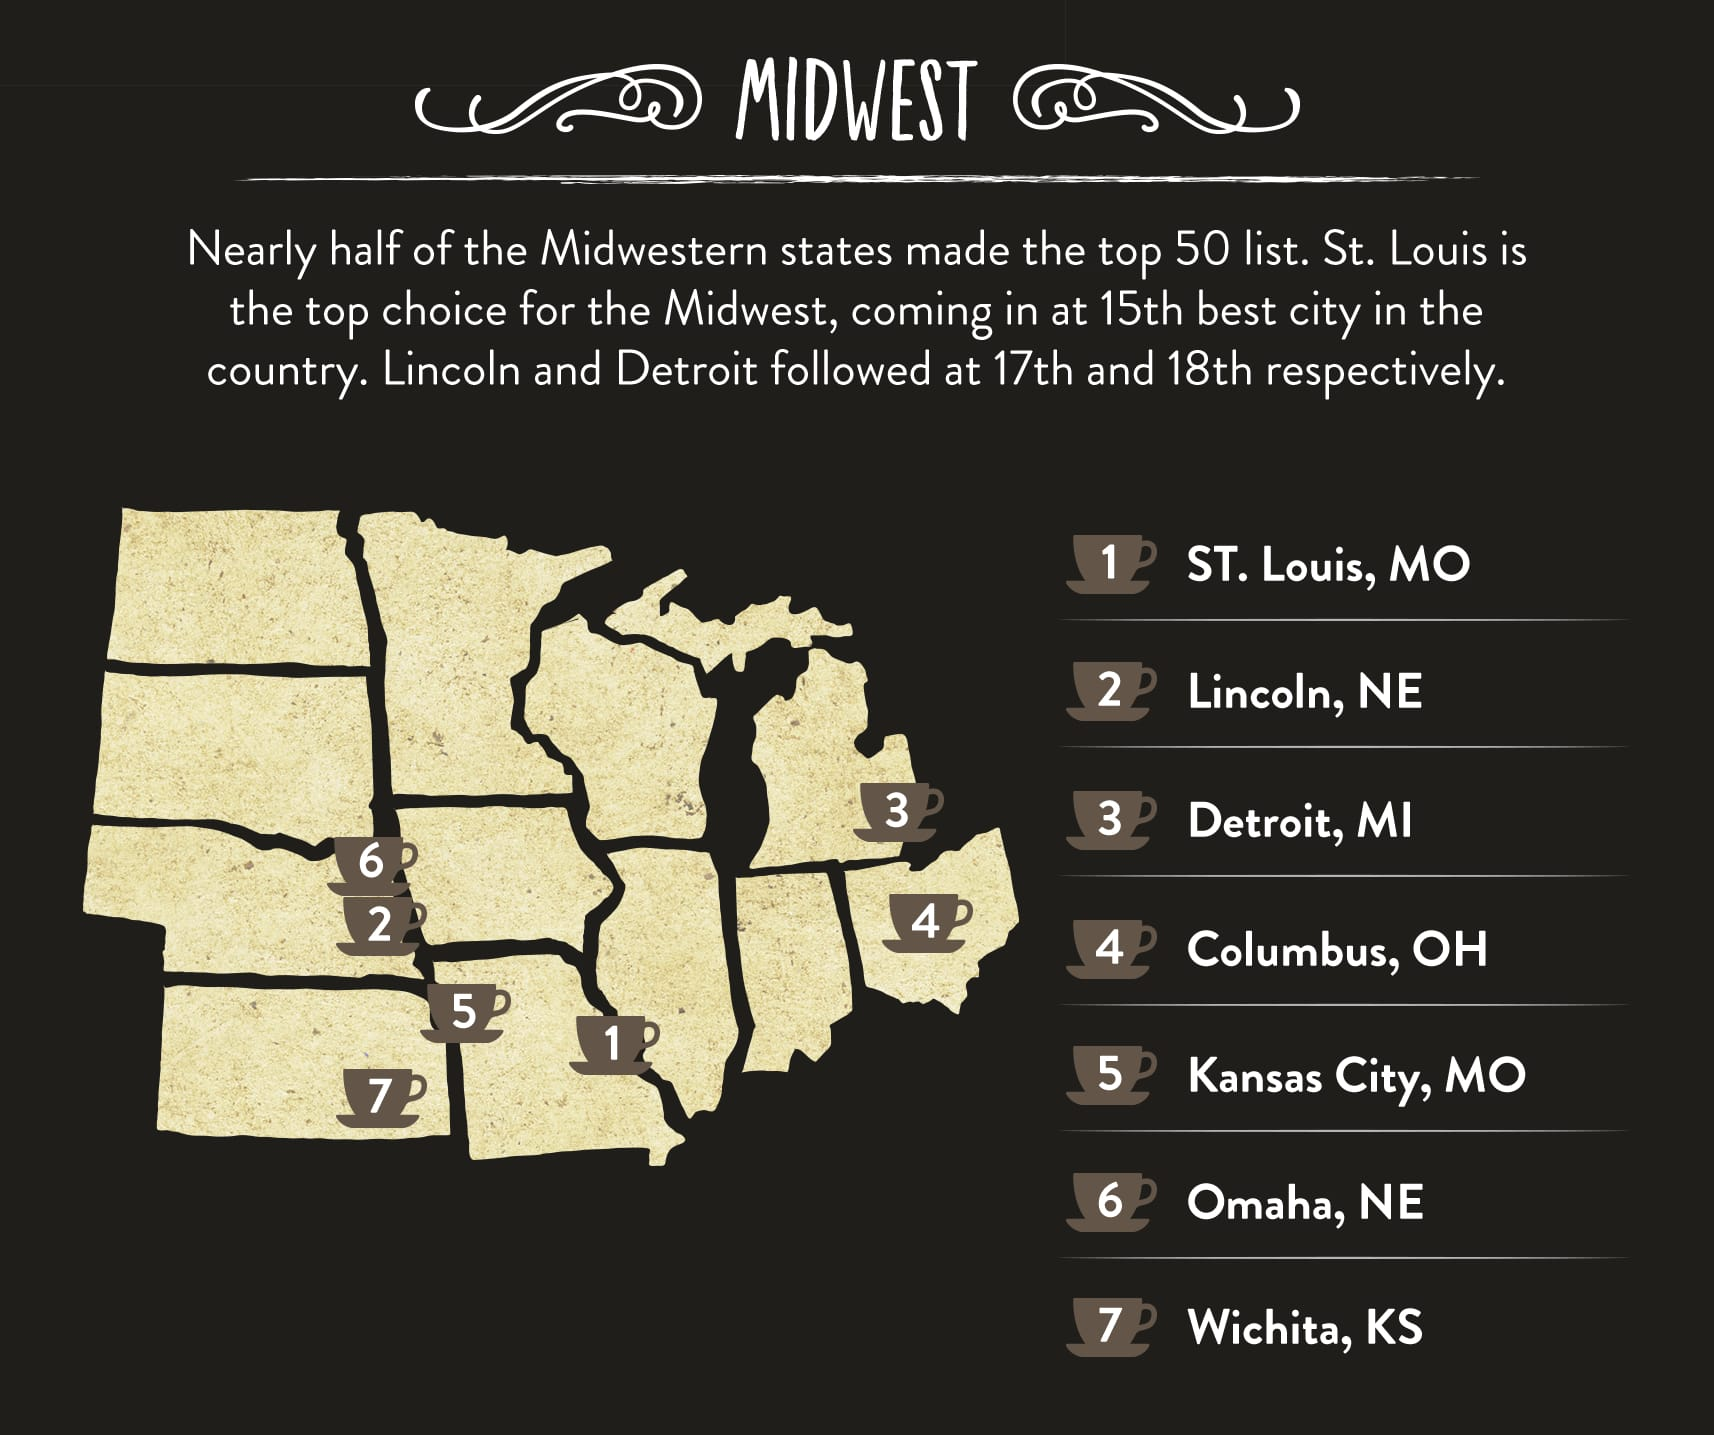 Best Coffee Cities in the Midwest